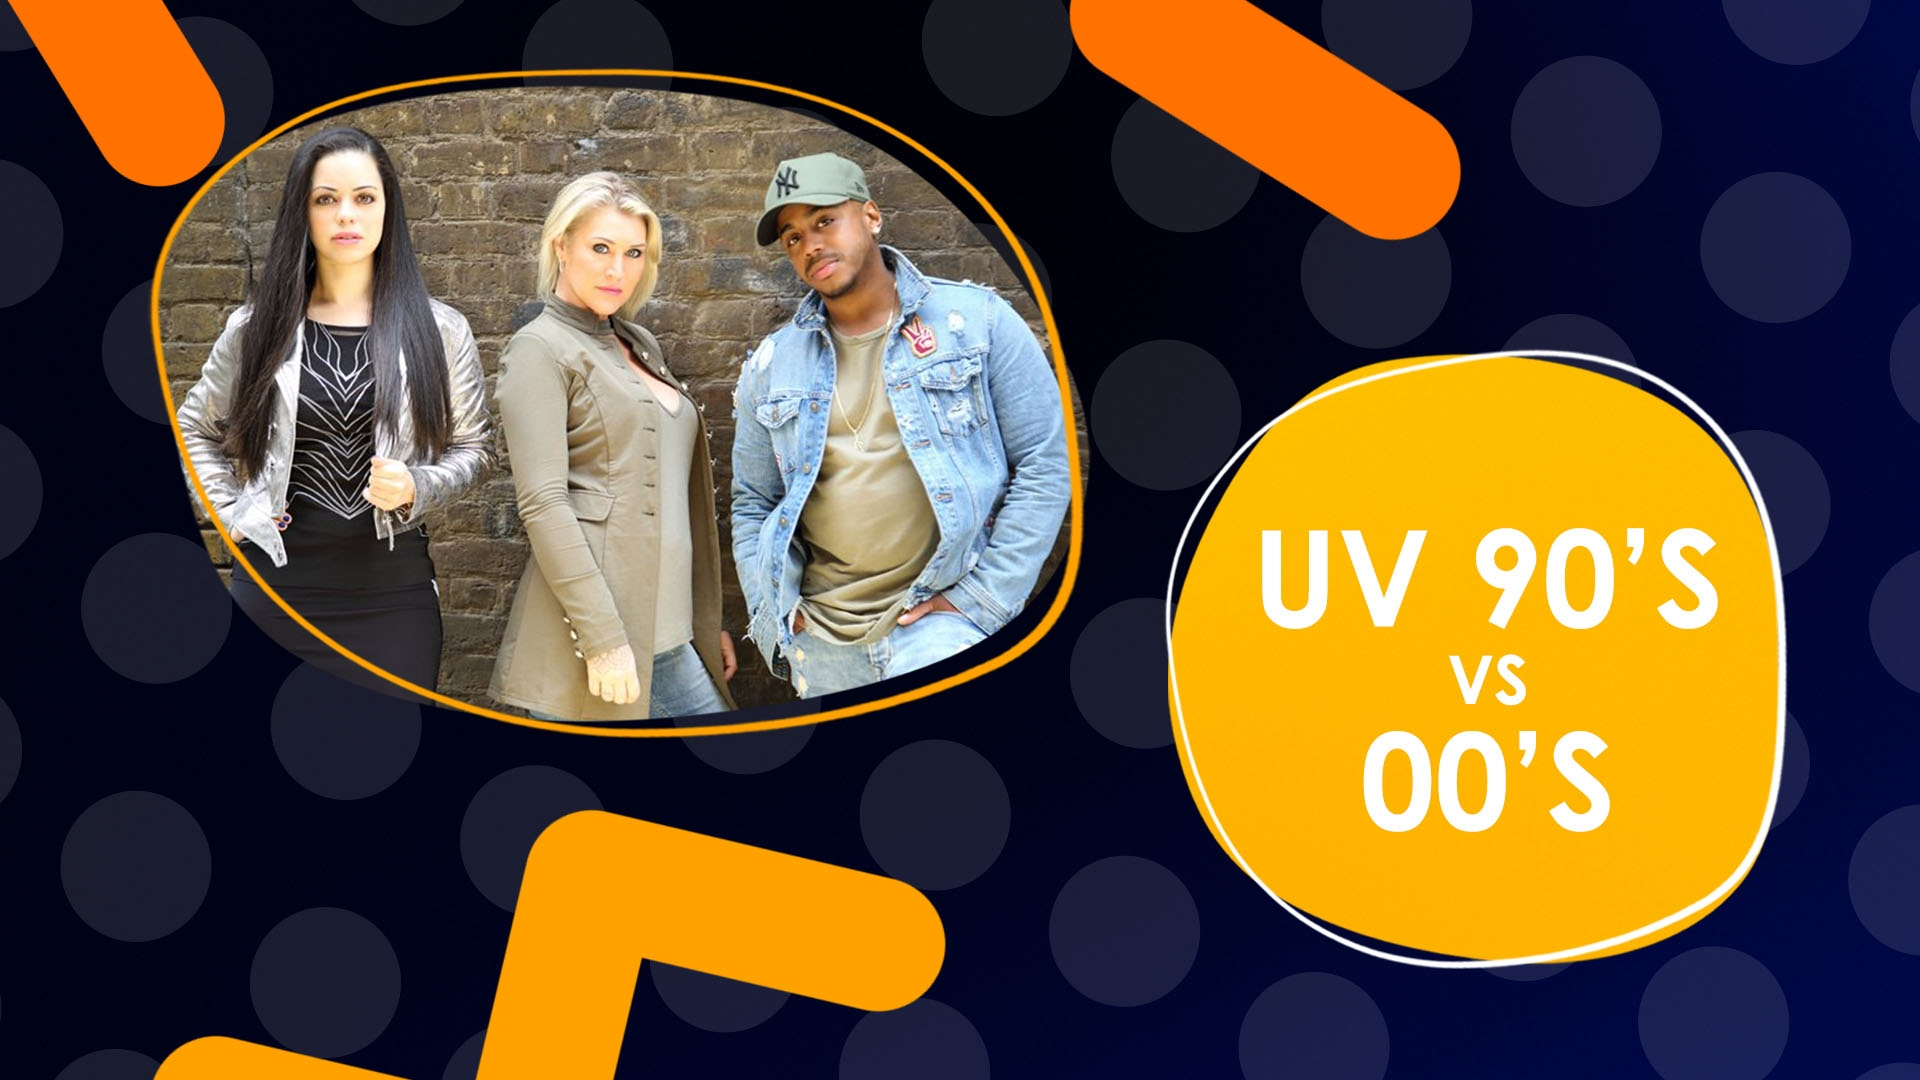 UV 90's vs 00's Night - with S Club Party! LIMITED NUMBER OF TICKETS AVAILABLE ON THE DOOR